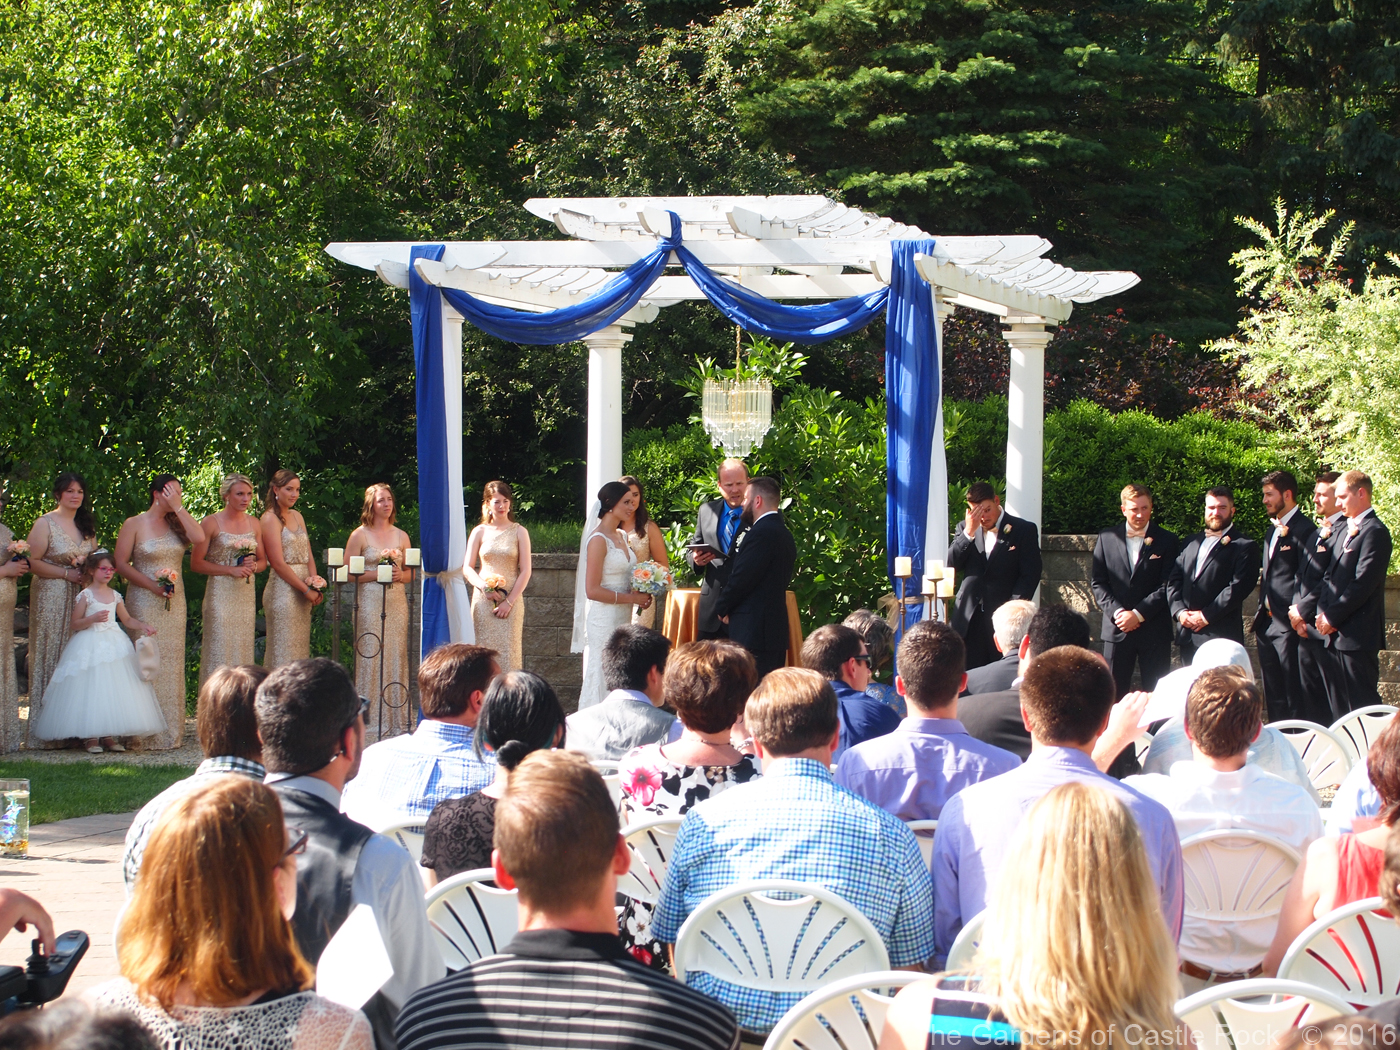 Carri & Sam at The Gardens of Castle Rock ~ Minnesota Garden Wedding - White Pergola on the Grand Promenade